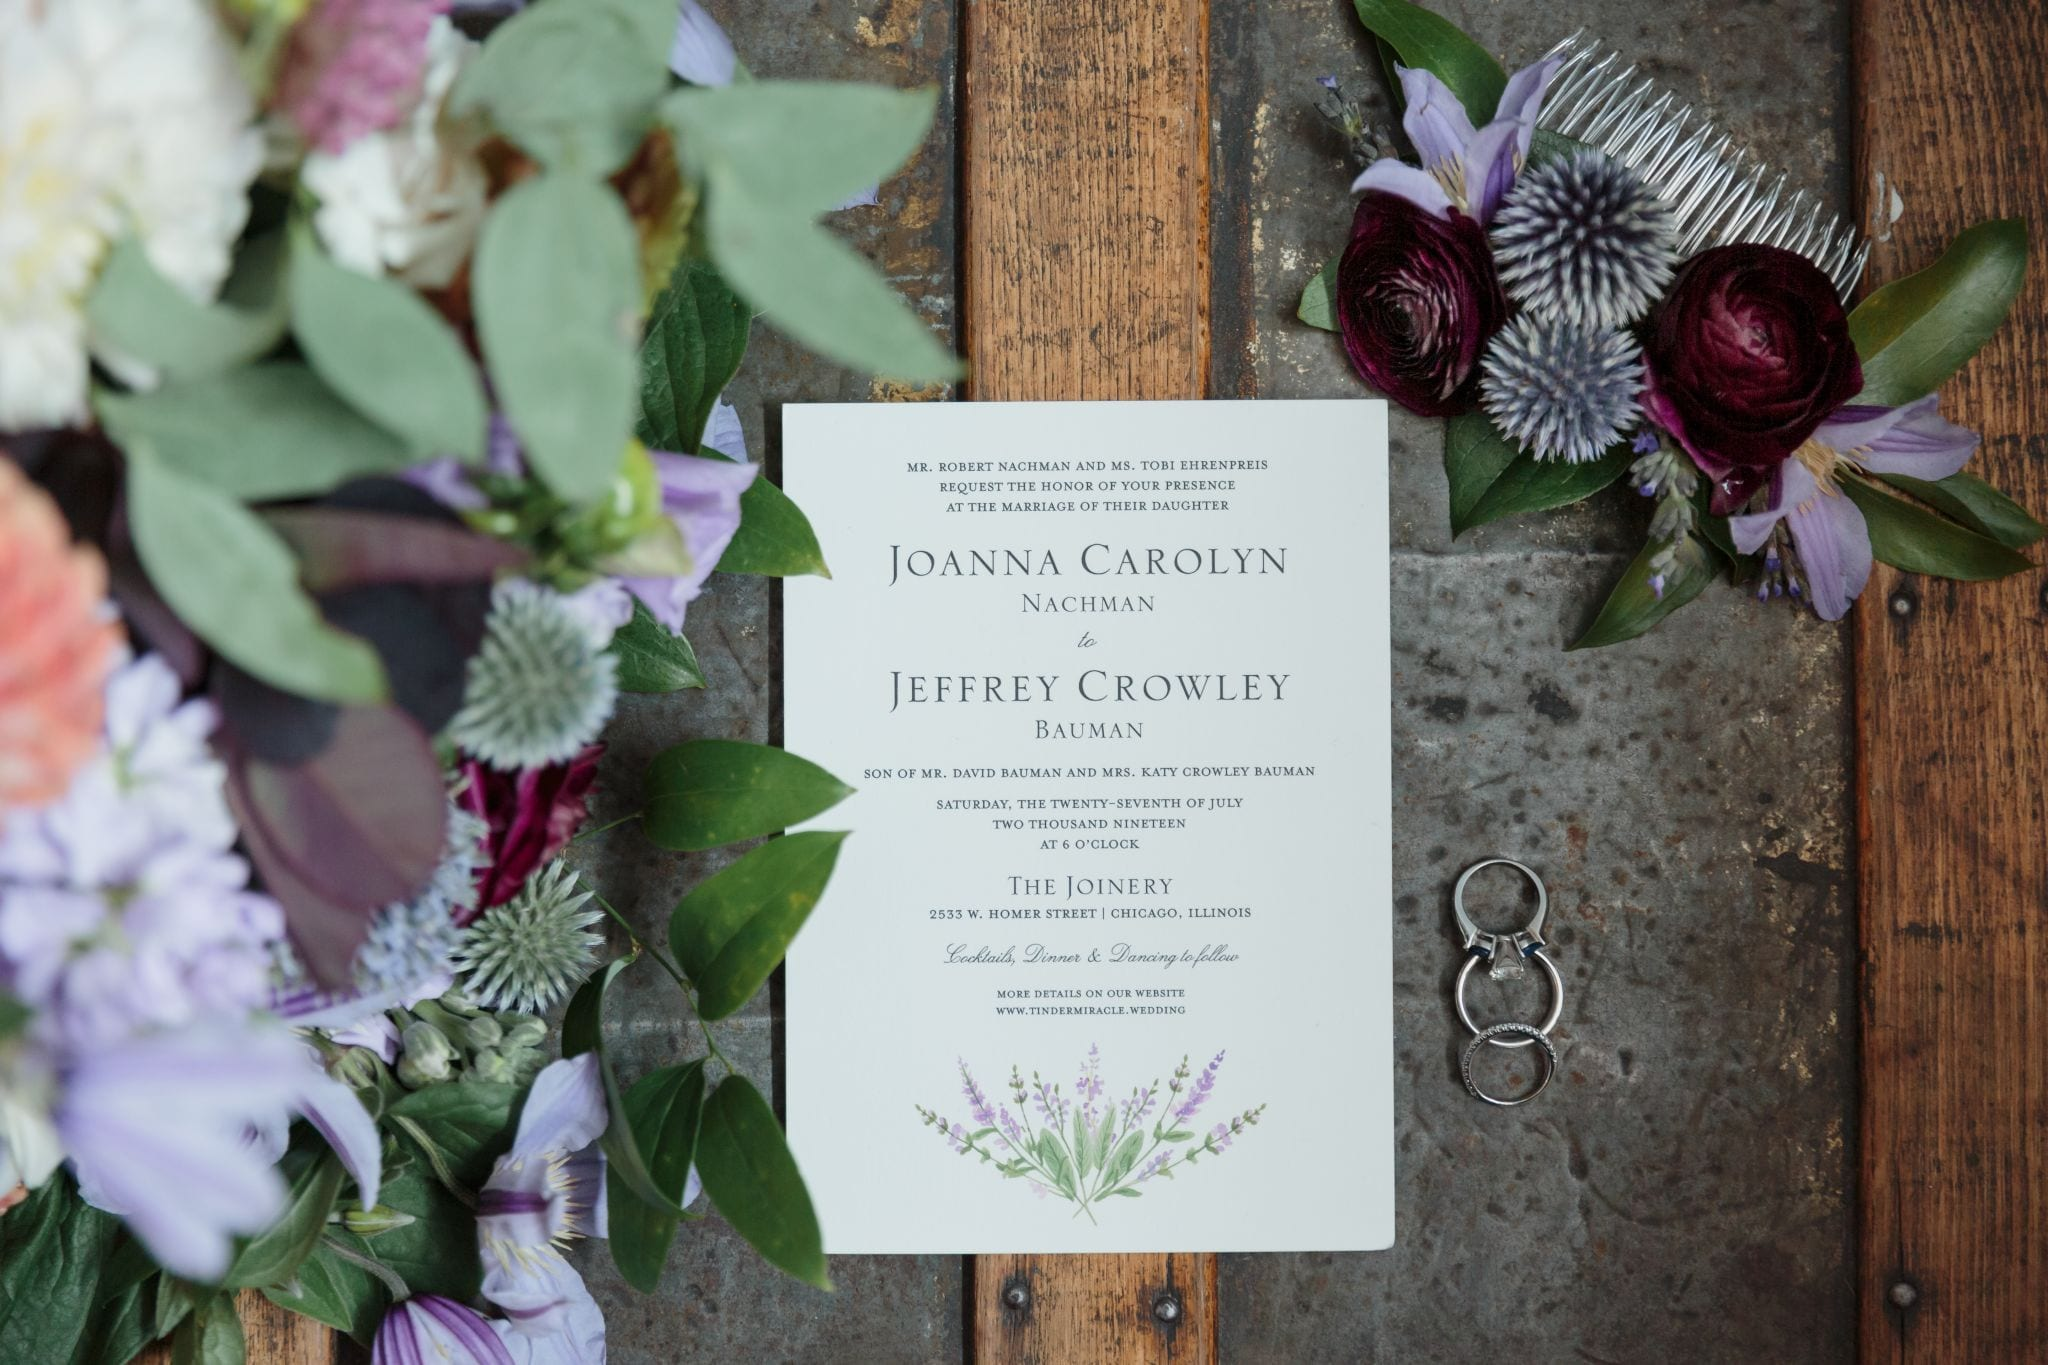 The Joinery Wedding Photography - Wes Craft Photography